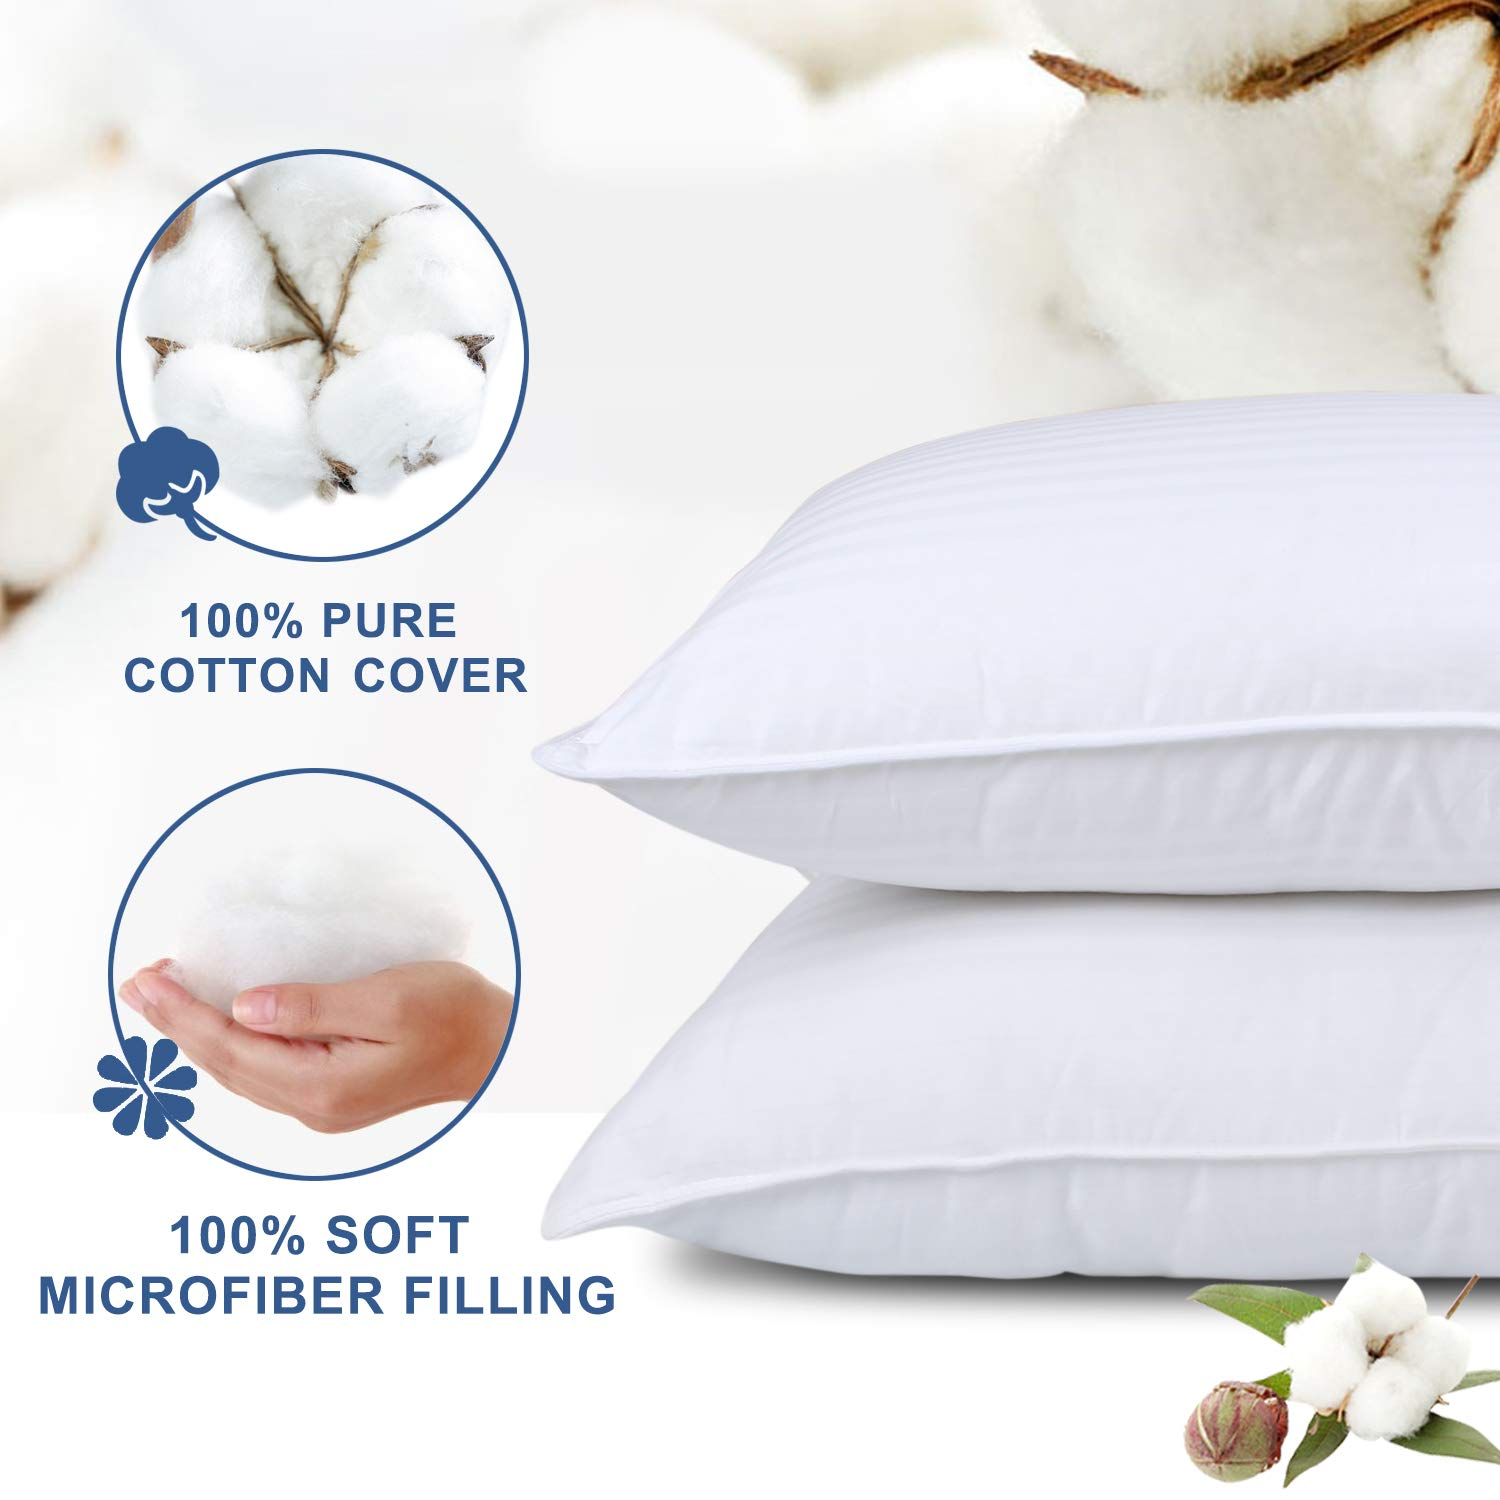 Mid Loft RENPHO Bed Pillows for Sleeping 2 Pack Soft Down Alternative Standard Pillow Plush Fiber Fill Hotel Collection Pillow Hypoallergenic Dust Mite Resistance